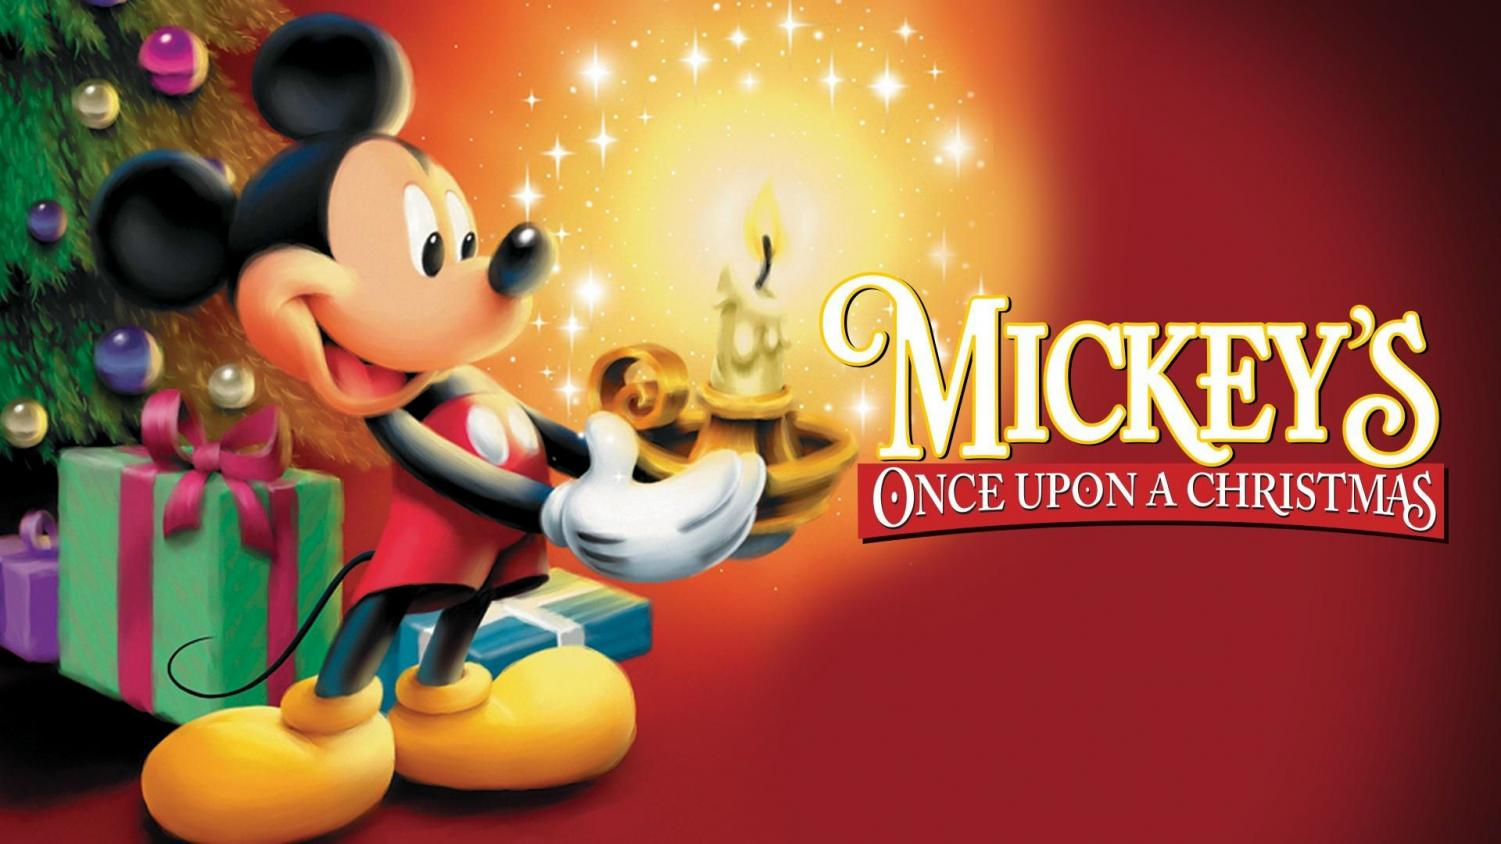 Watch Mickey and his friends with your family to spread holiday cheer.